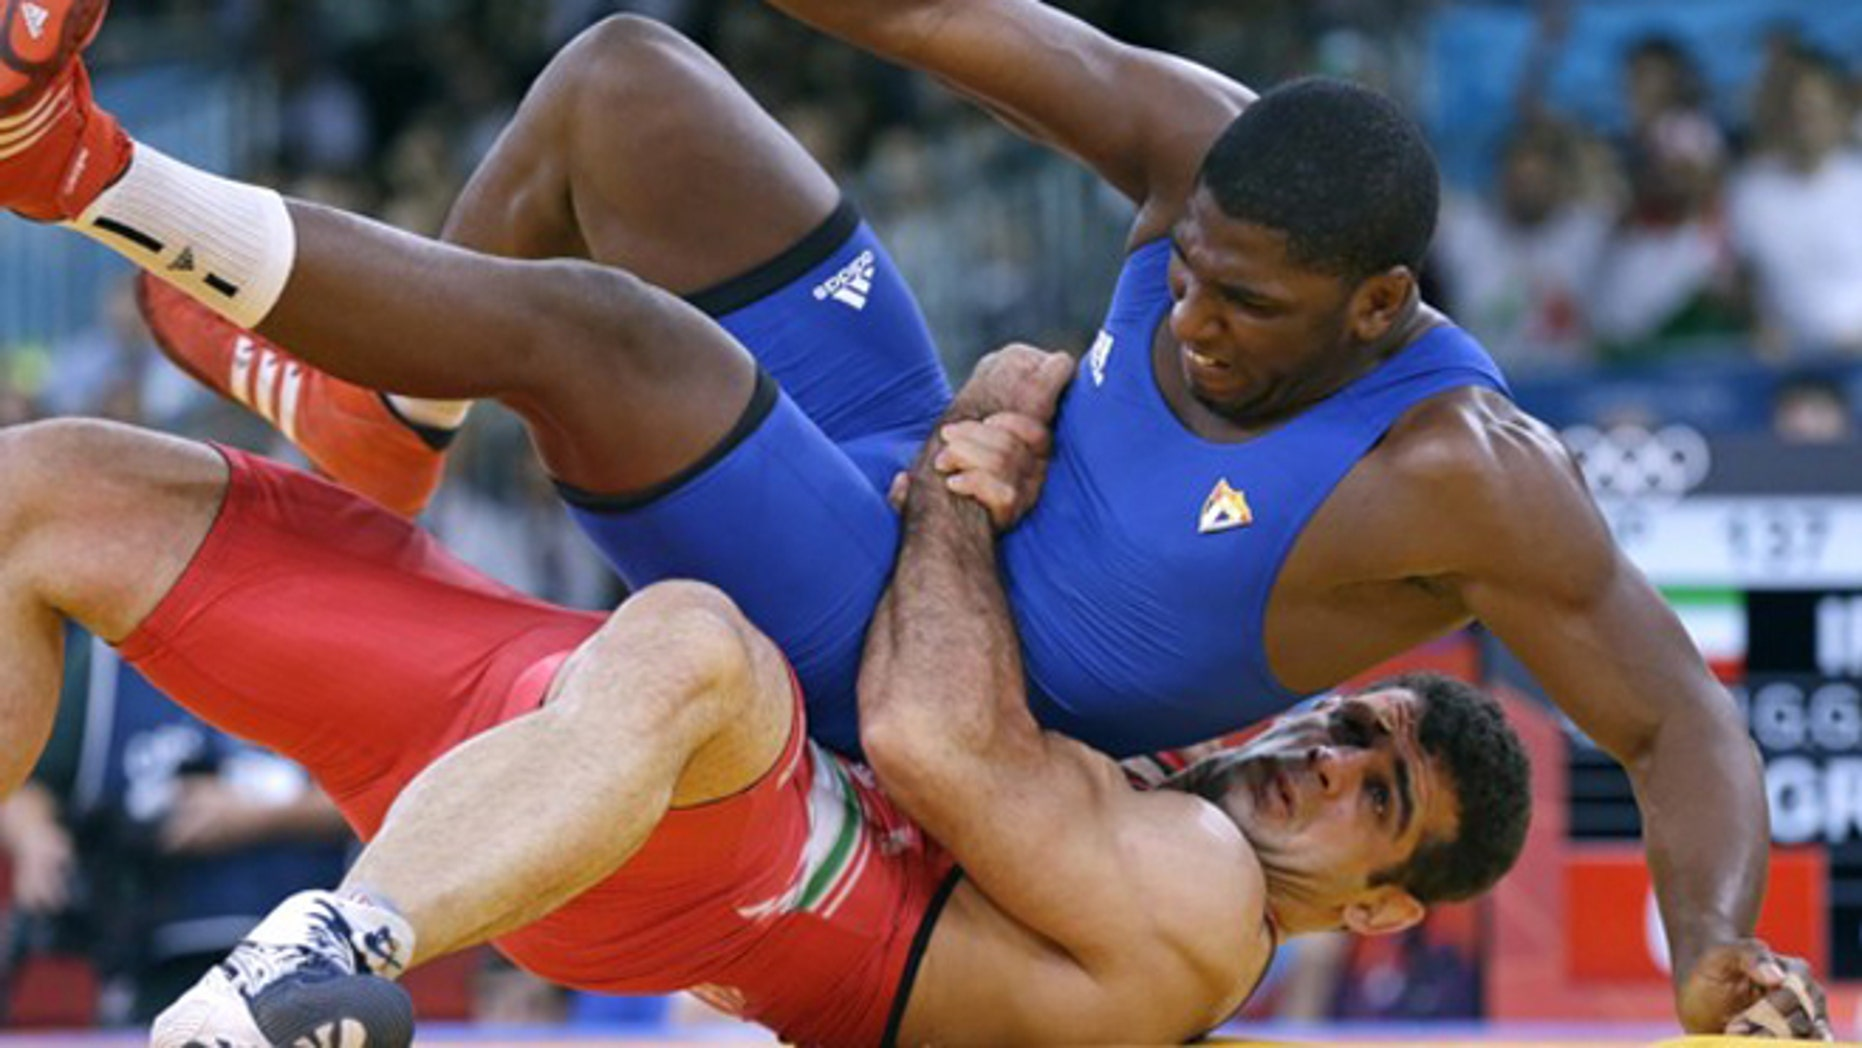 The Olympic committee has called for wrestling -- shown here in the 2012 London games -- to be stripped from the program by 2020.